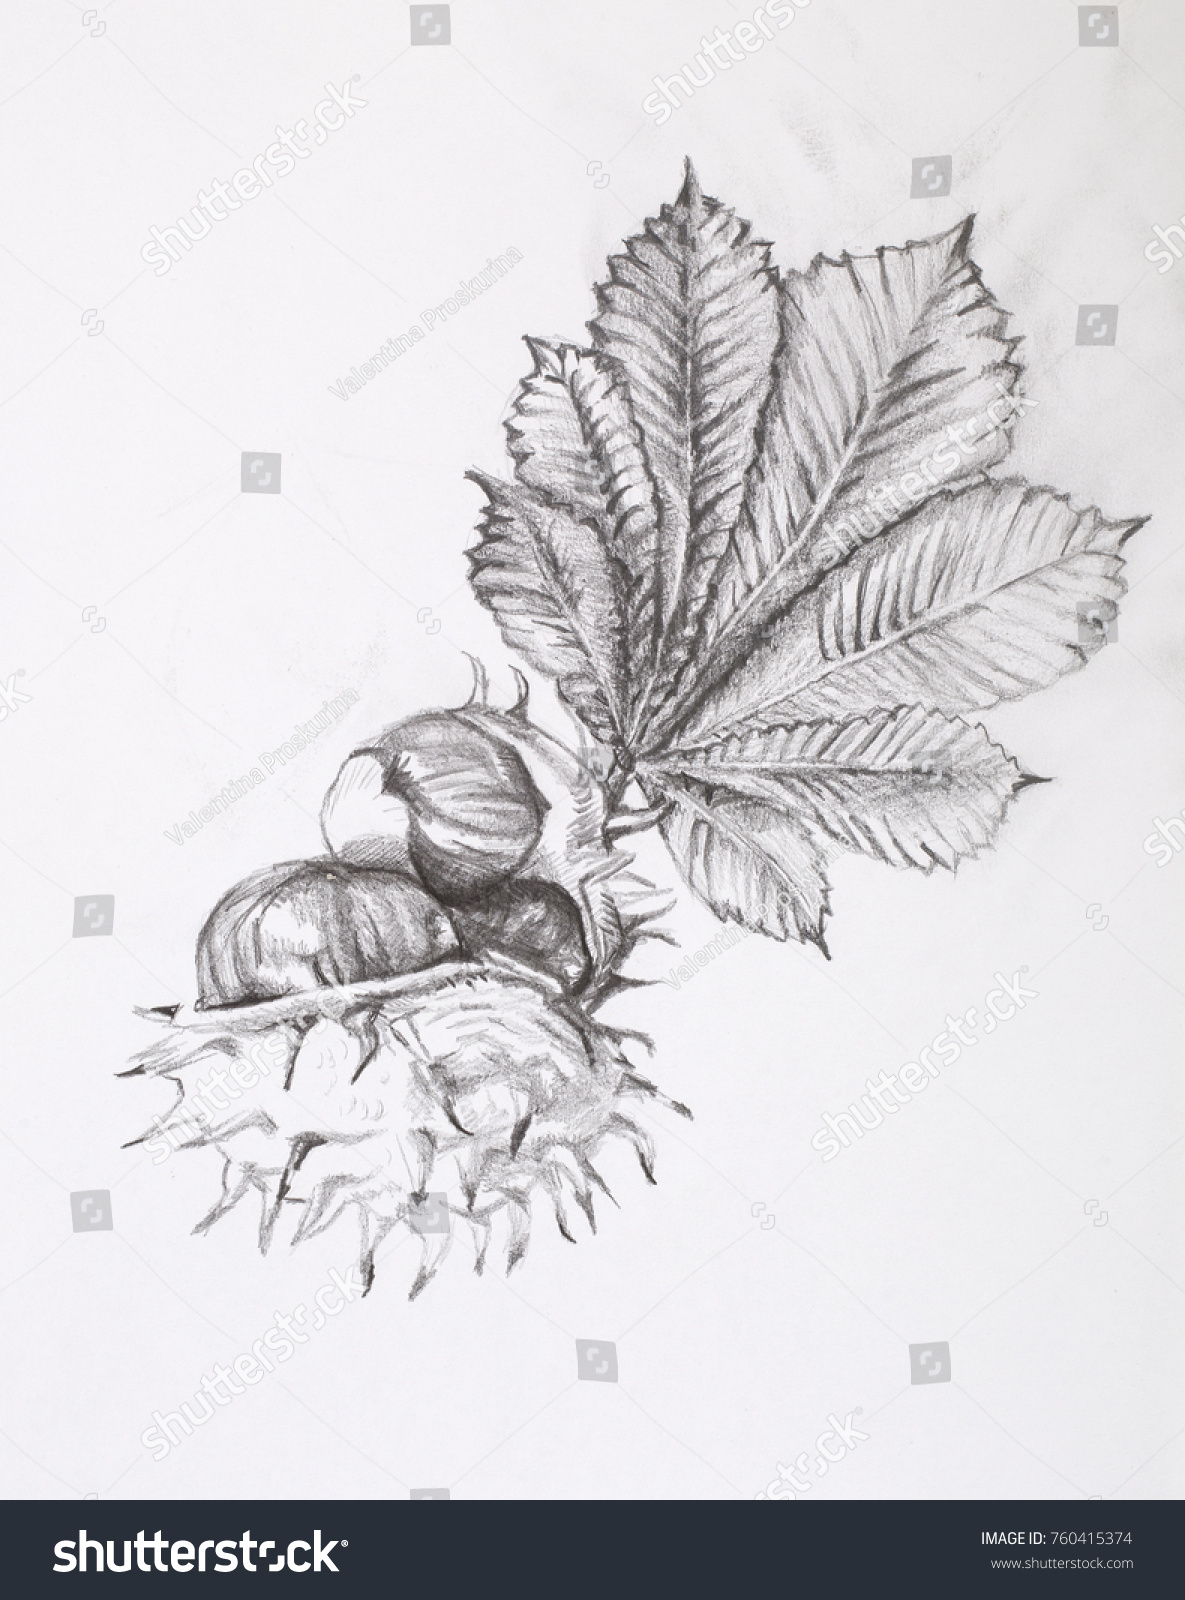 How to draw a chestnut in pencil step by step